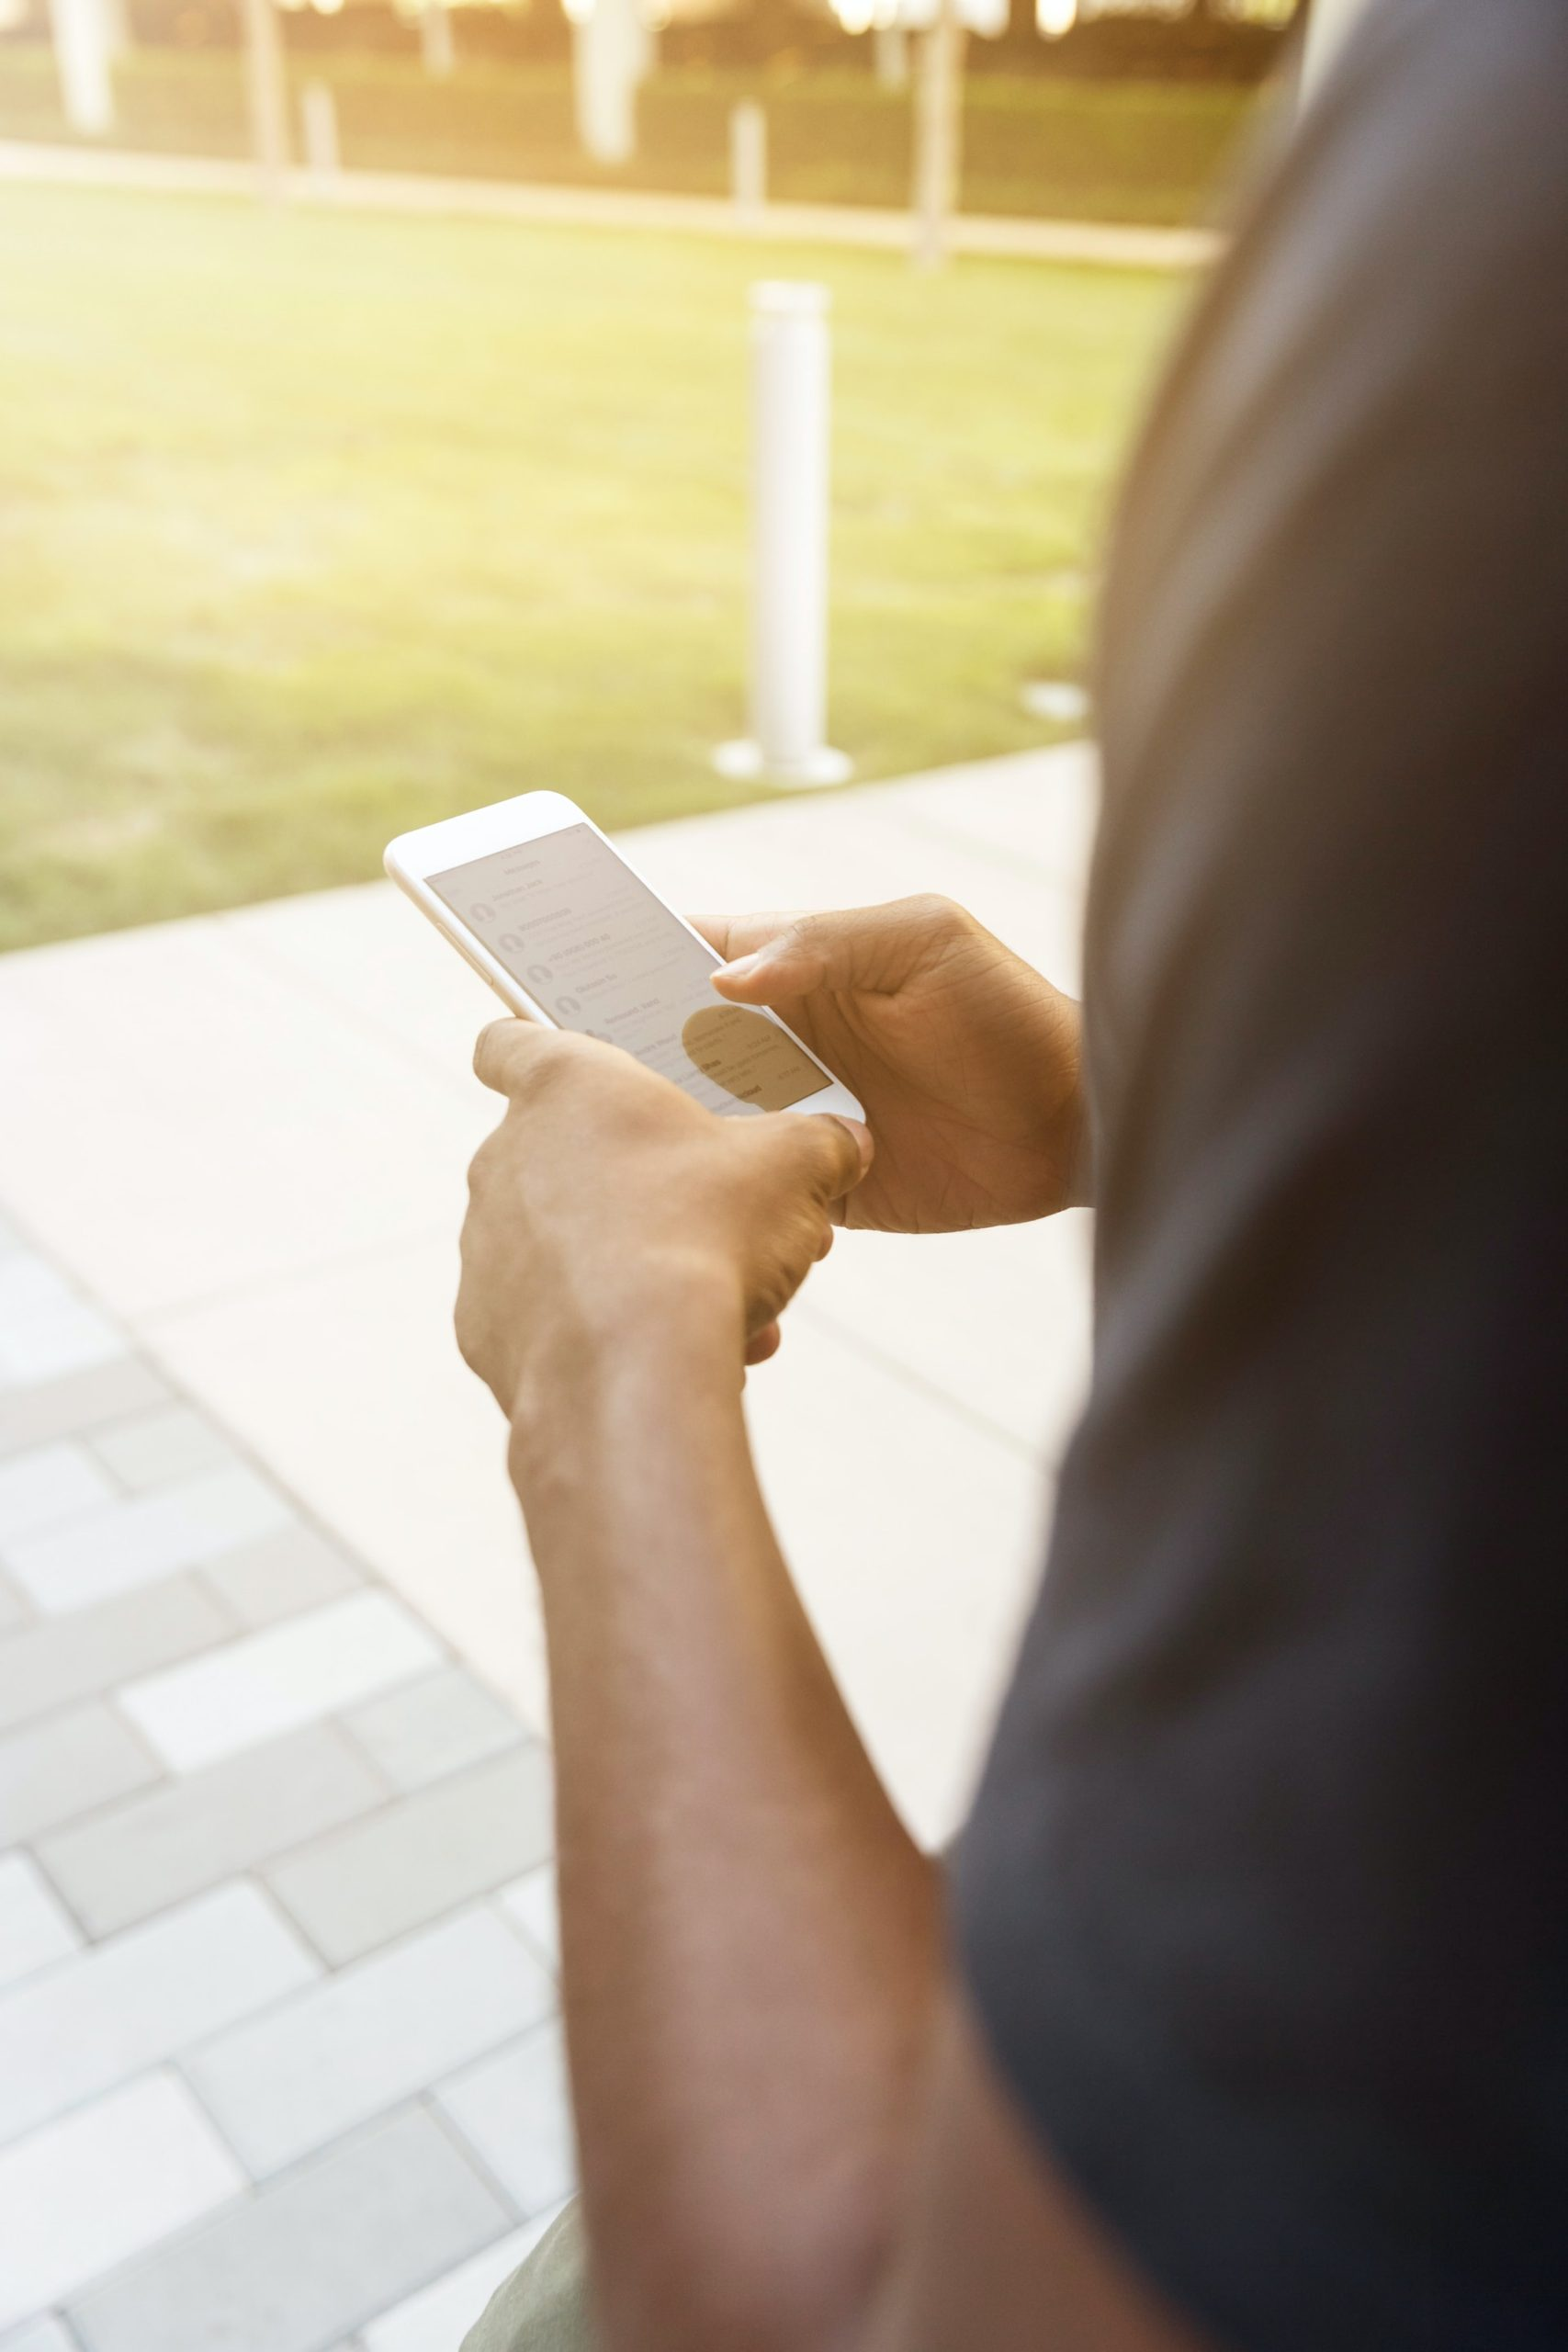 Dangers Texting While Walking Article Image